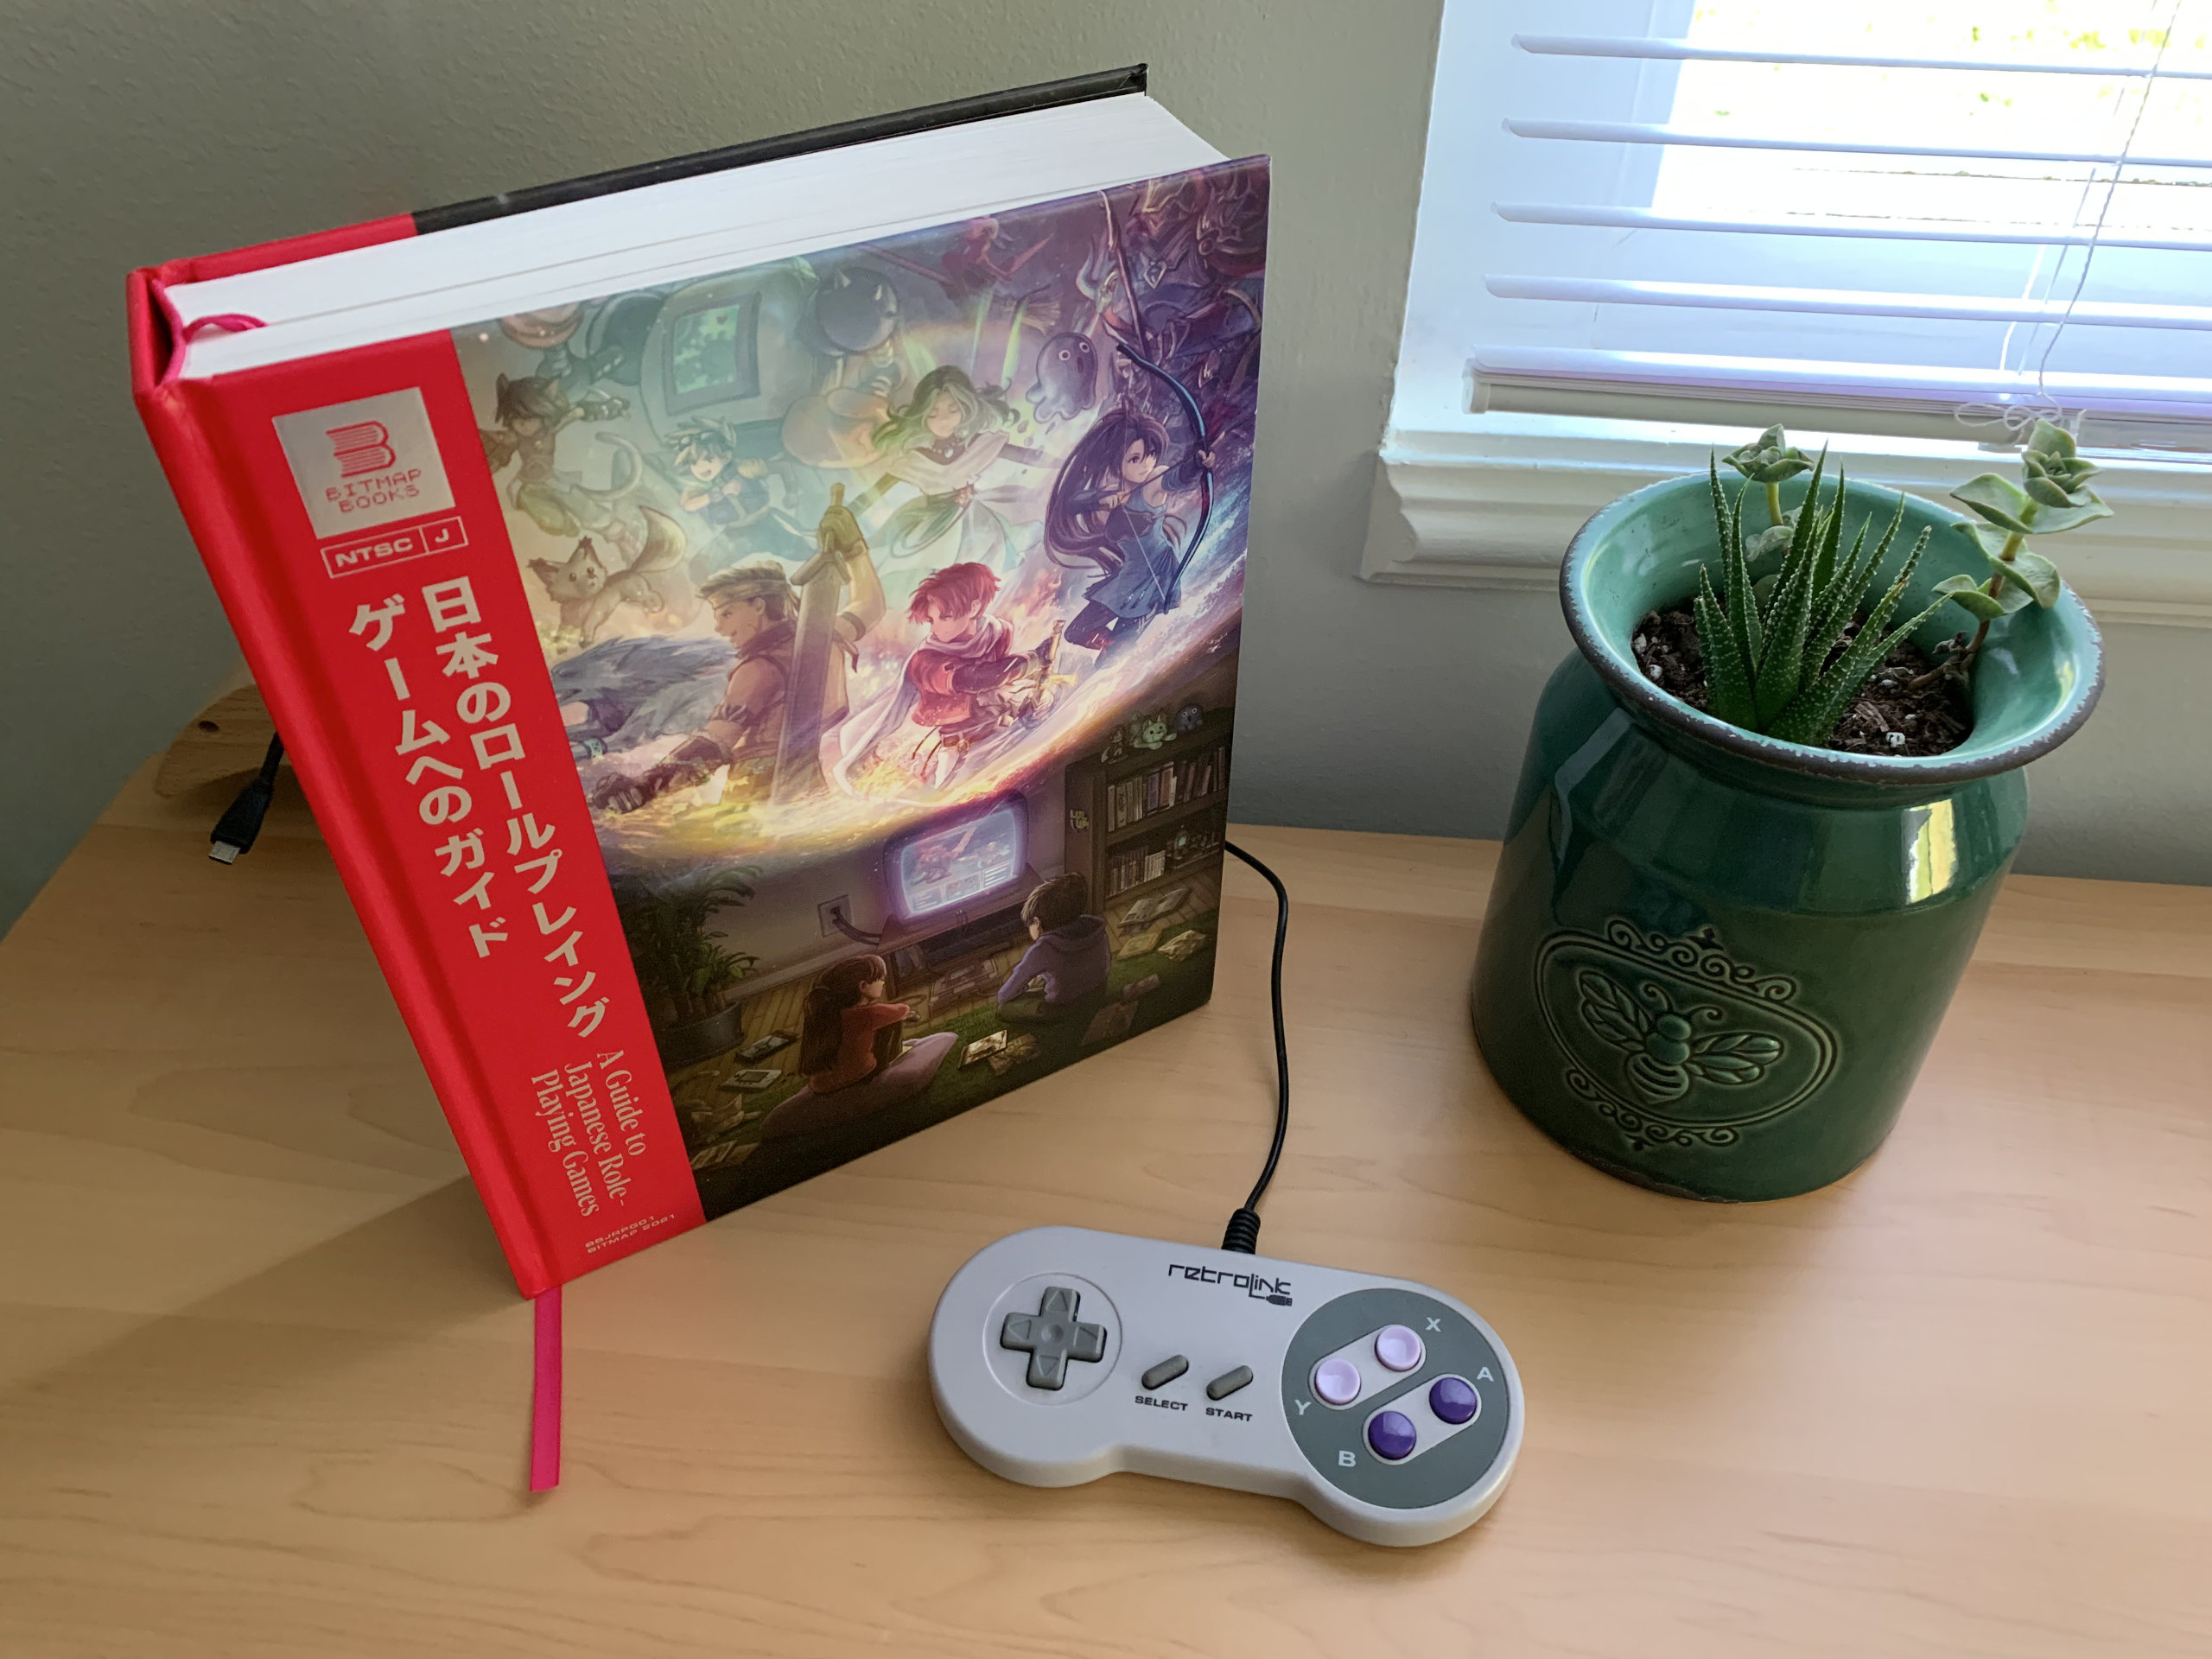 A Guide to Japanese Role-Playing Games by Bitmap Books on a table with an SNES controller and ceramic succulent planter.